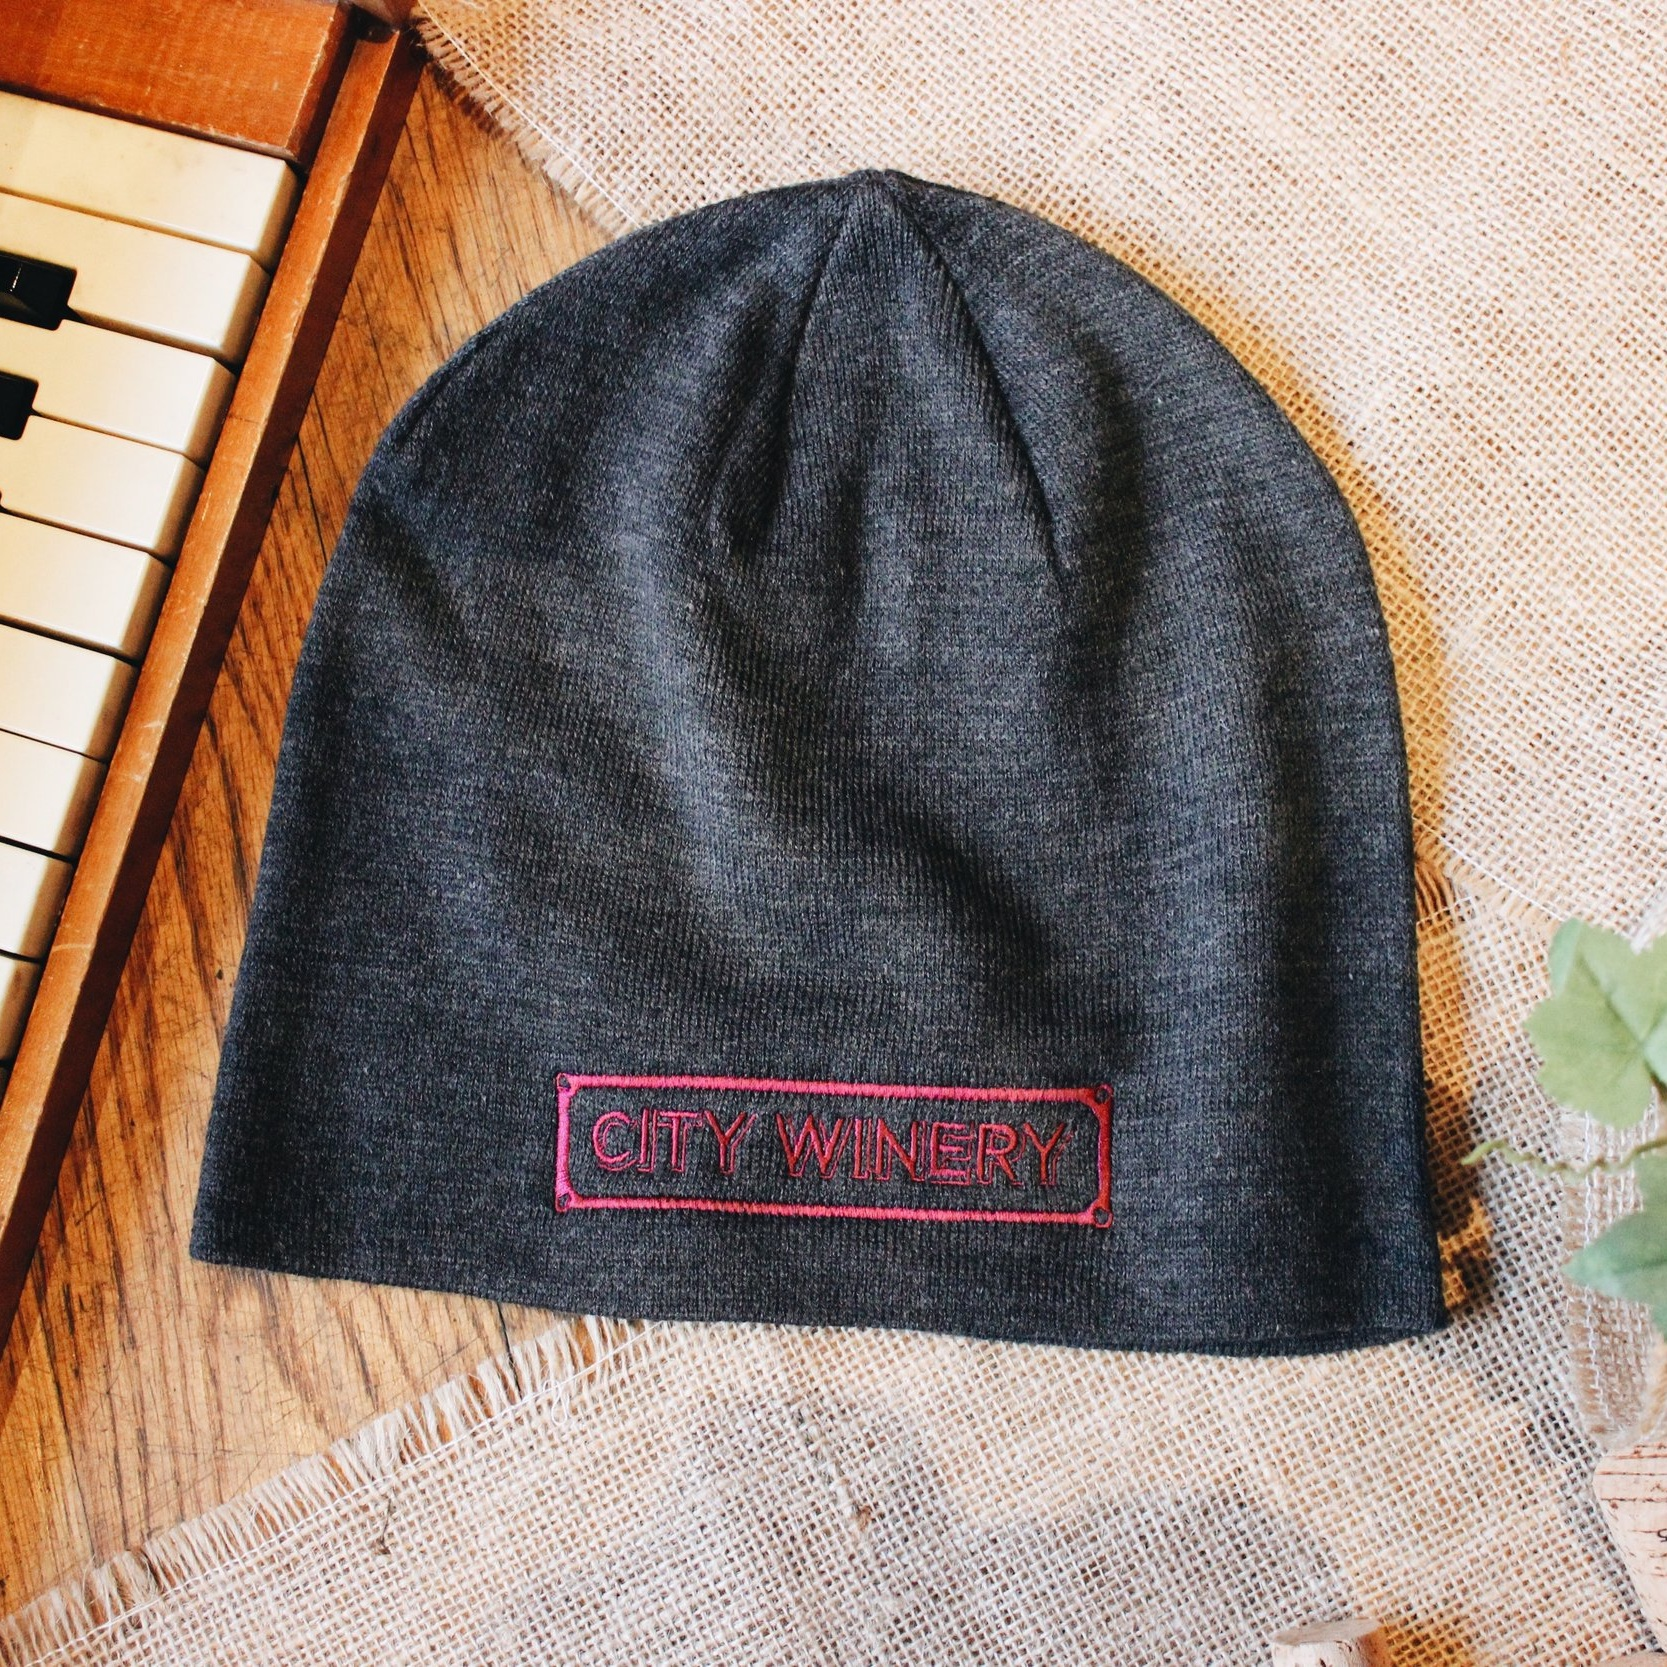 City Winery Logo Beanie - Rep the City Winery brand and keep your noggin warm with this comfortable, deep grey beanie with a wine red logo for yours truly. Fits true to adult sizing.